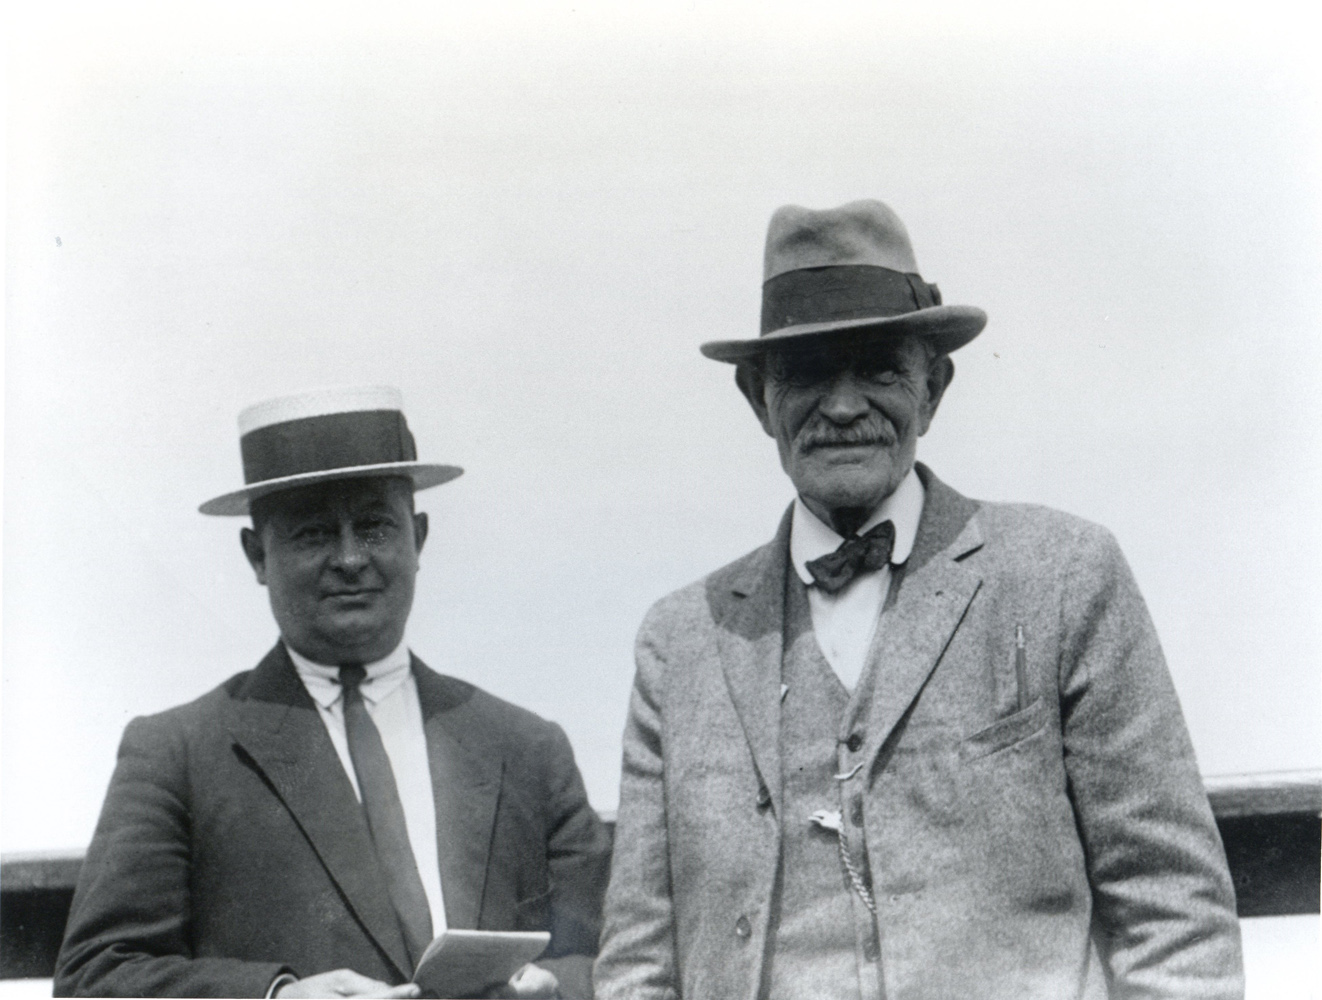 Winfield O'Connor and an unidentified man (Keeneland Library Cook Collection)